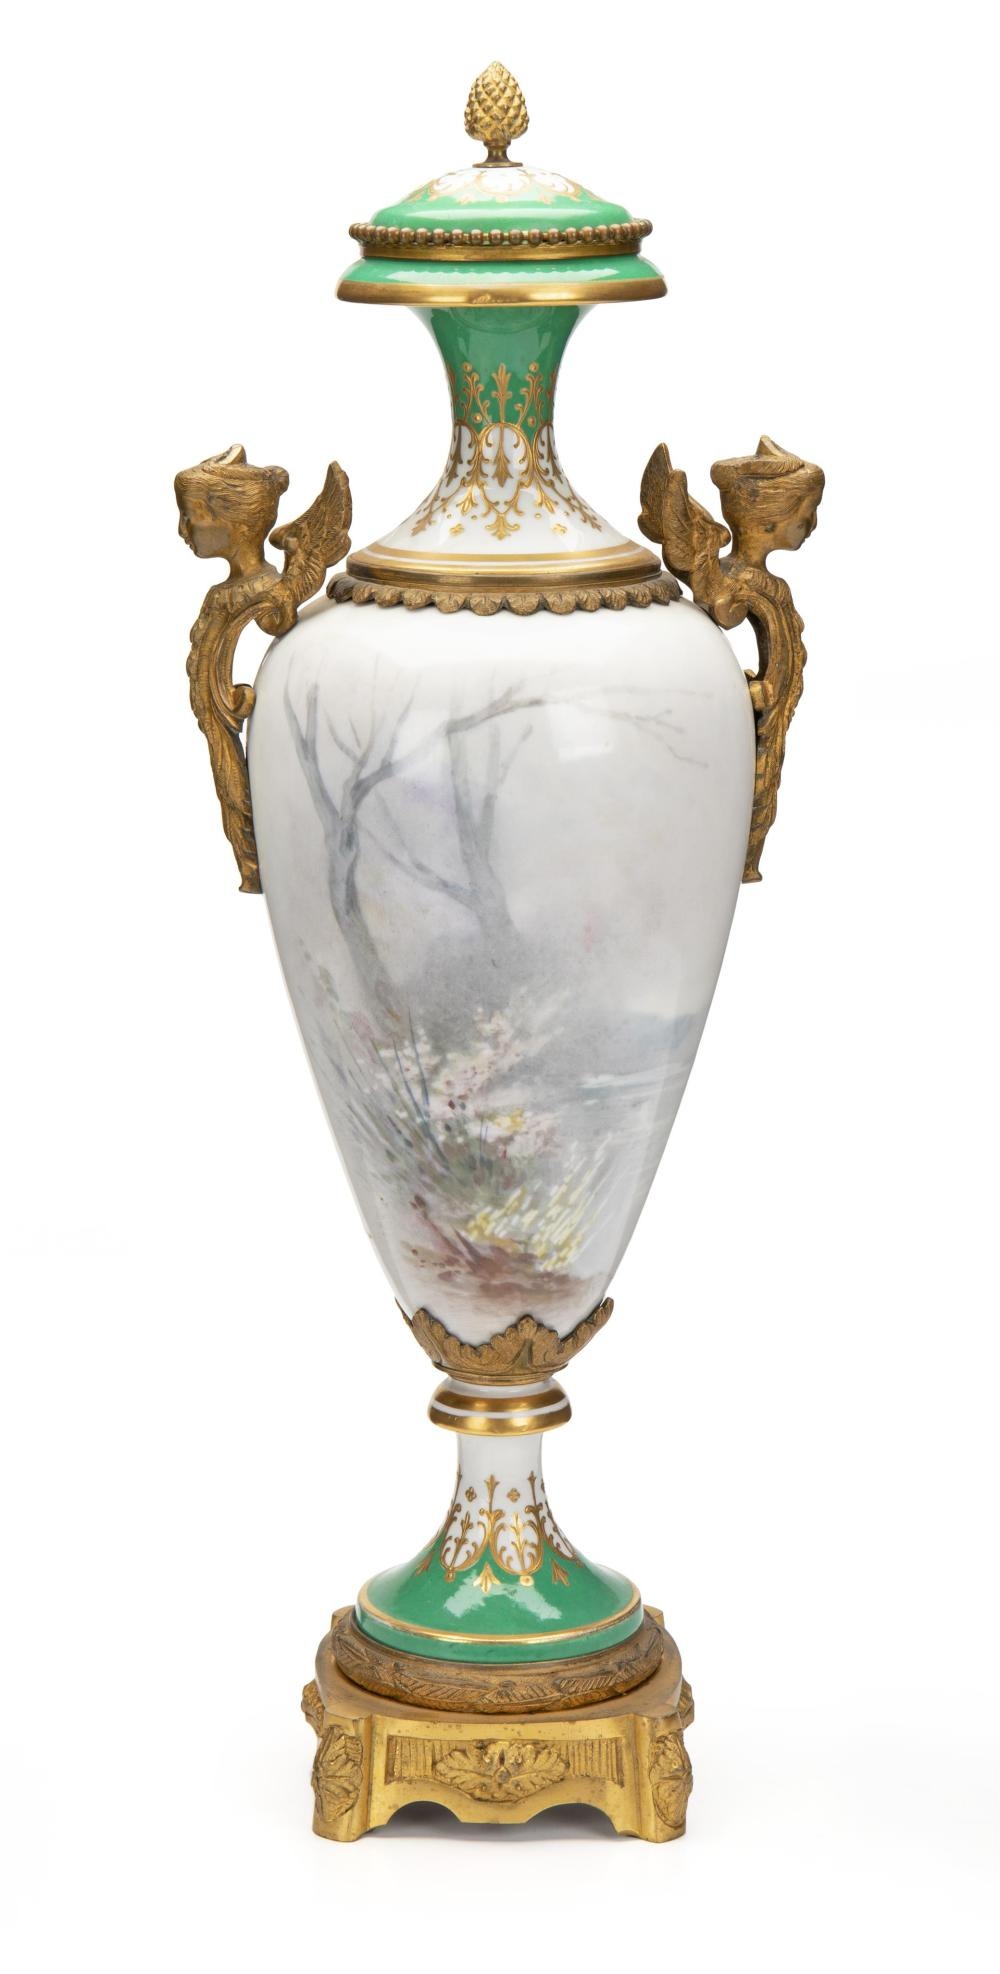 Image ref 78157F5097 - A Sèvres urn with portrait scene